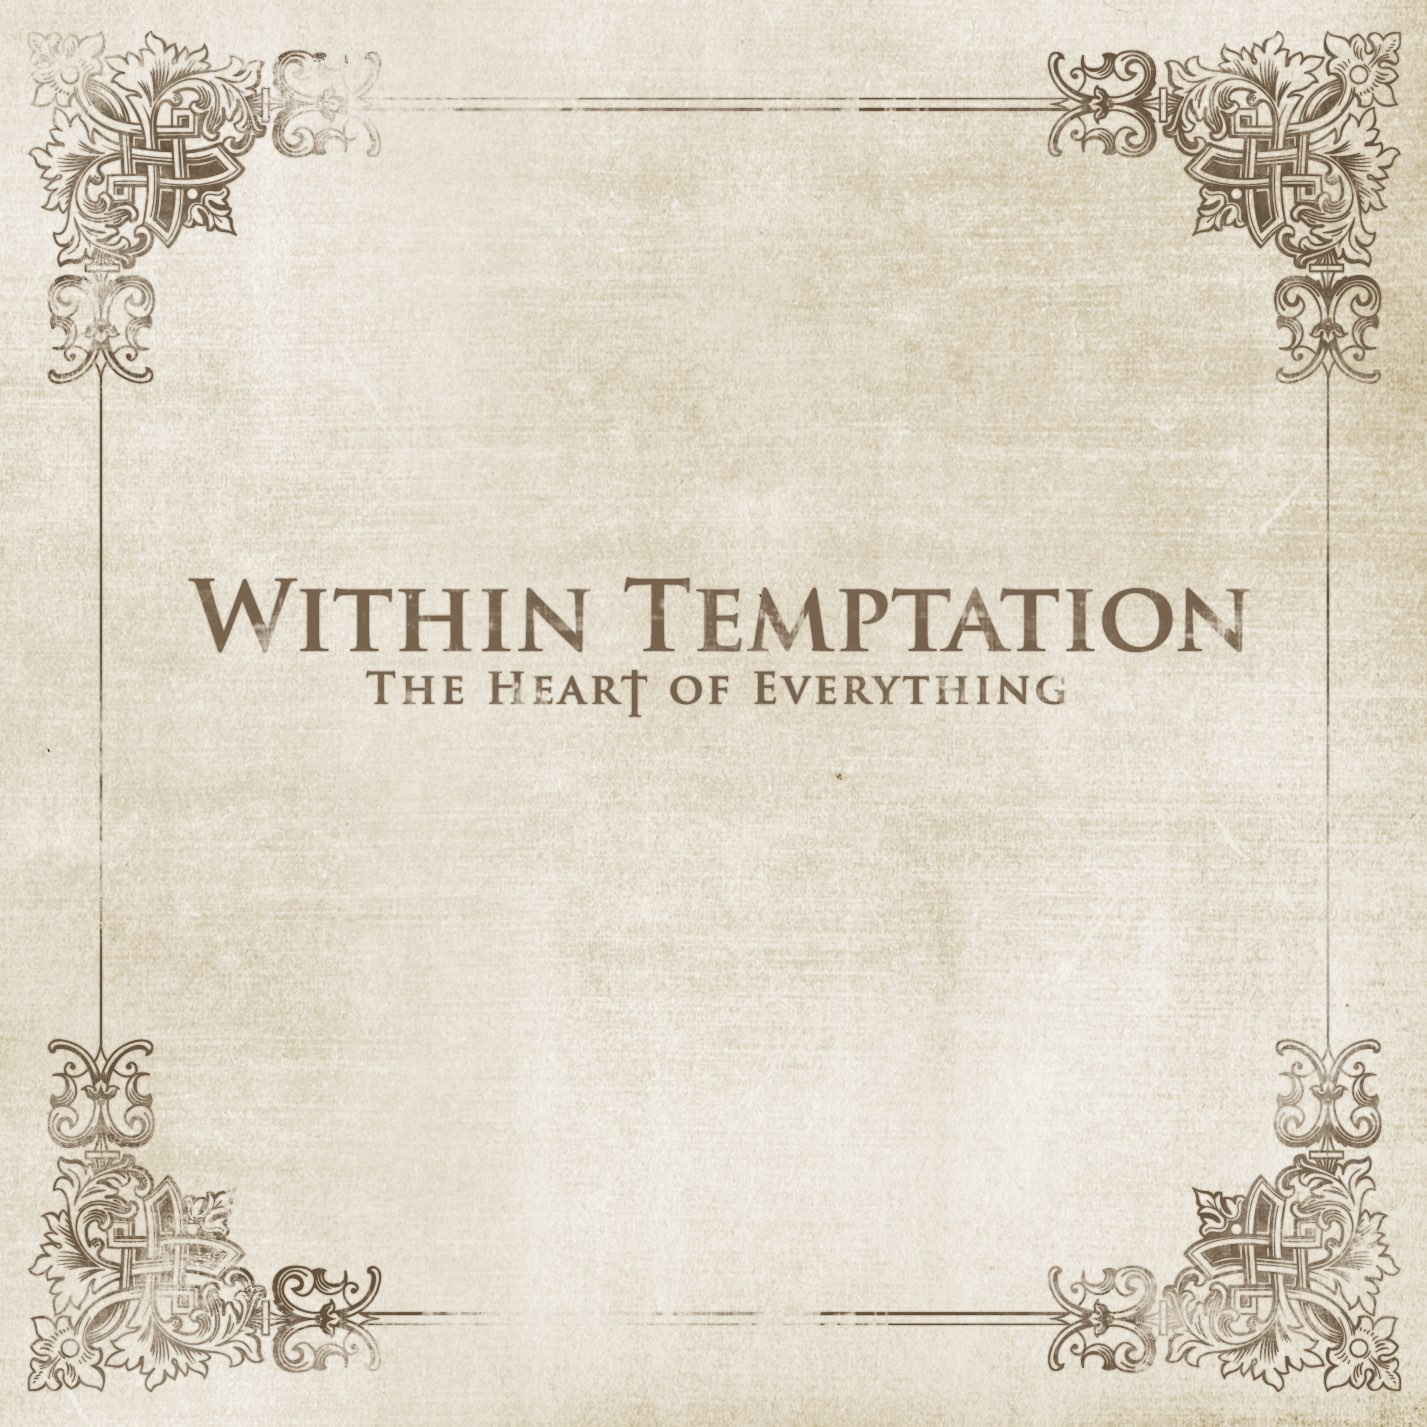 Heart of Everything Within Temptation album 2007